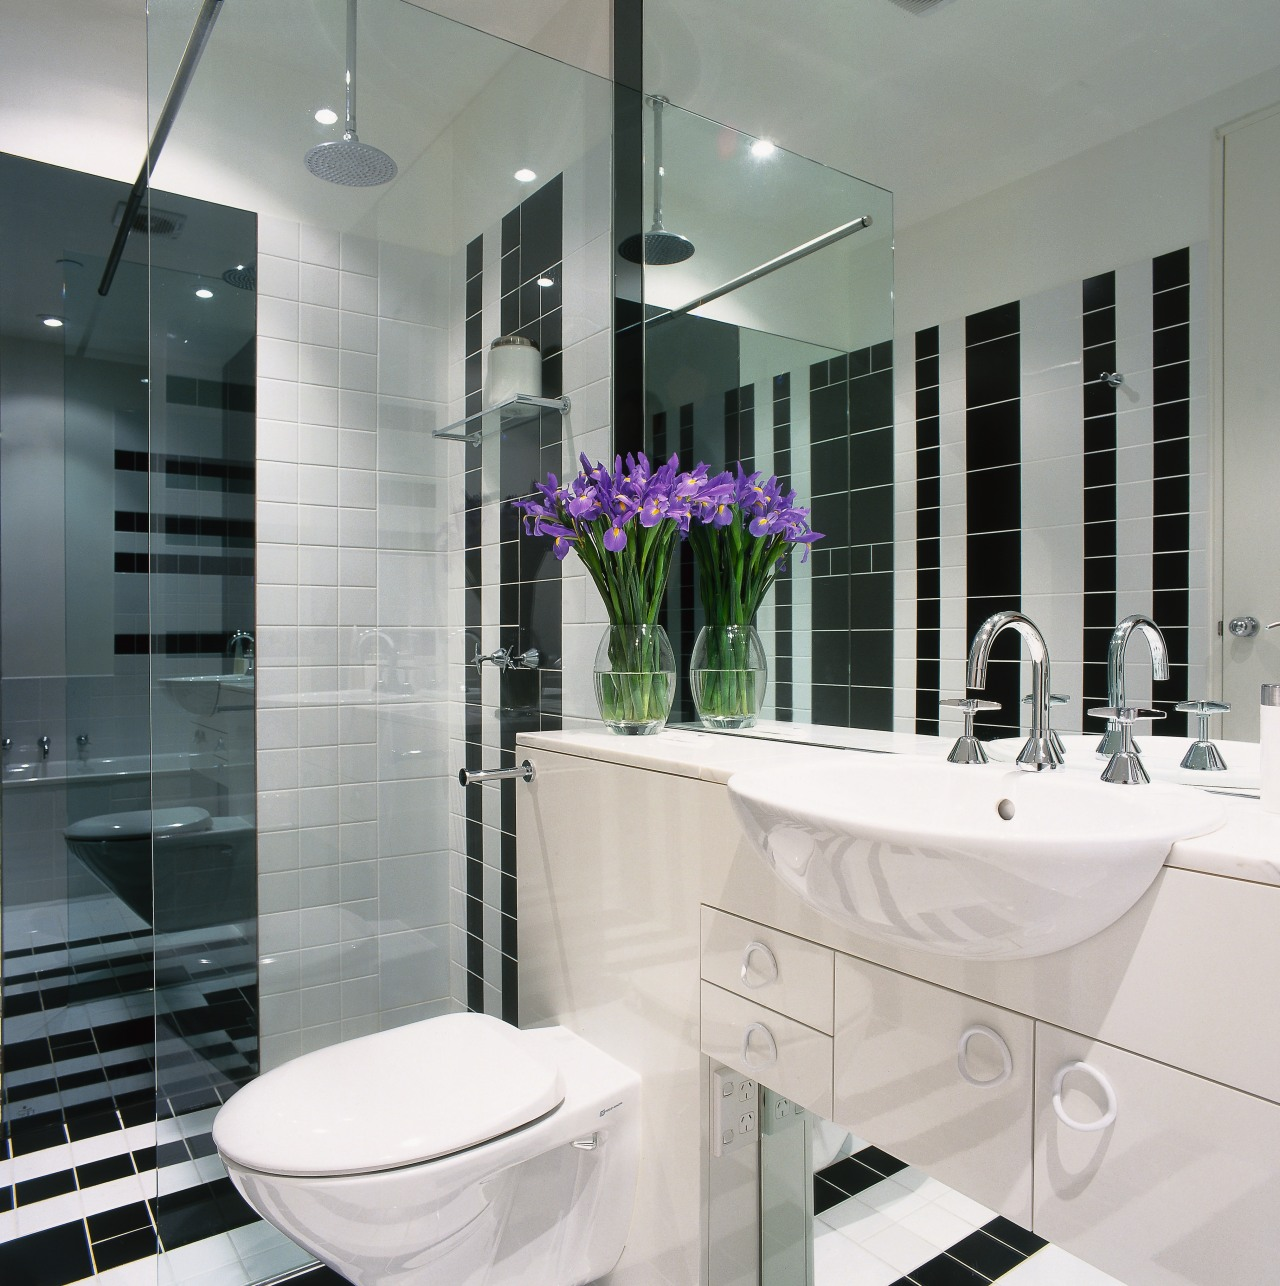 view of the bathroom showing both  smoky bathroom, home, interior design, purple, room, tap, gray, white